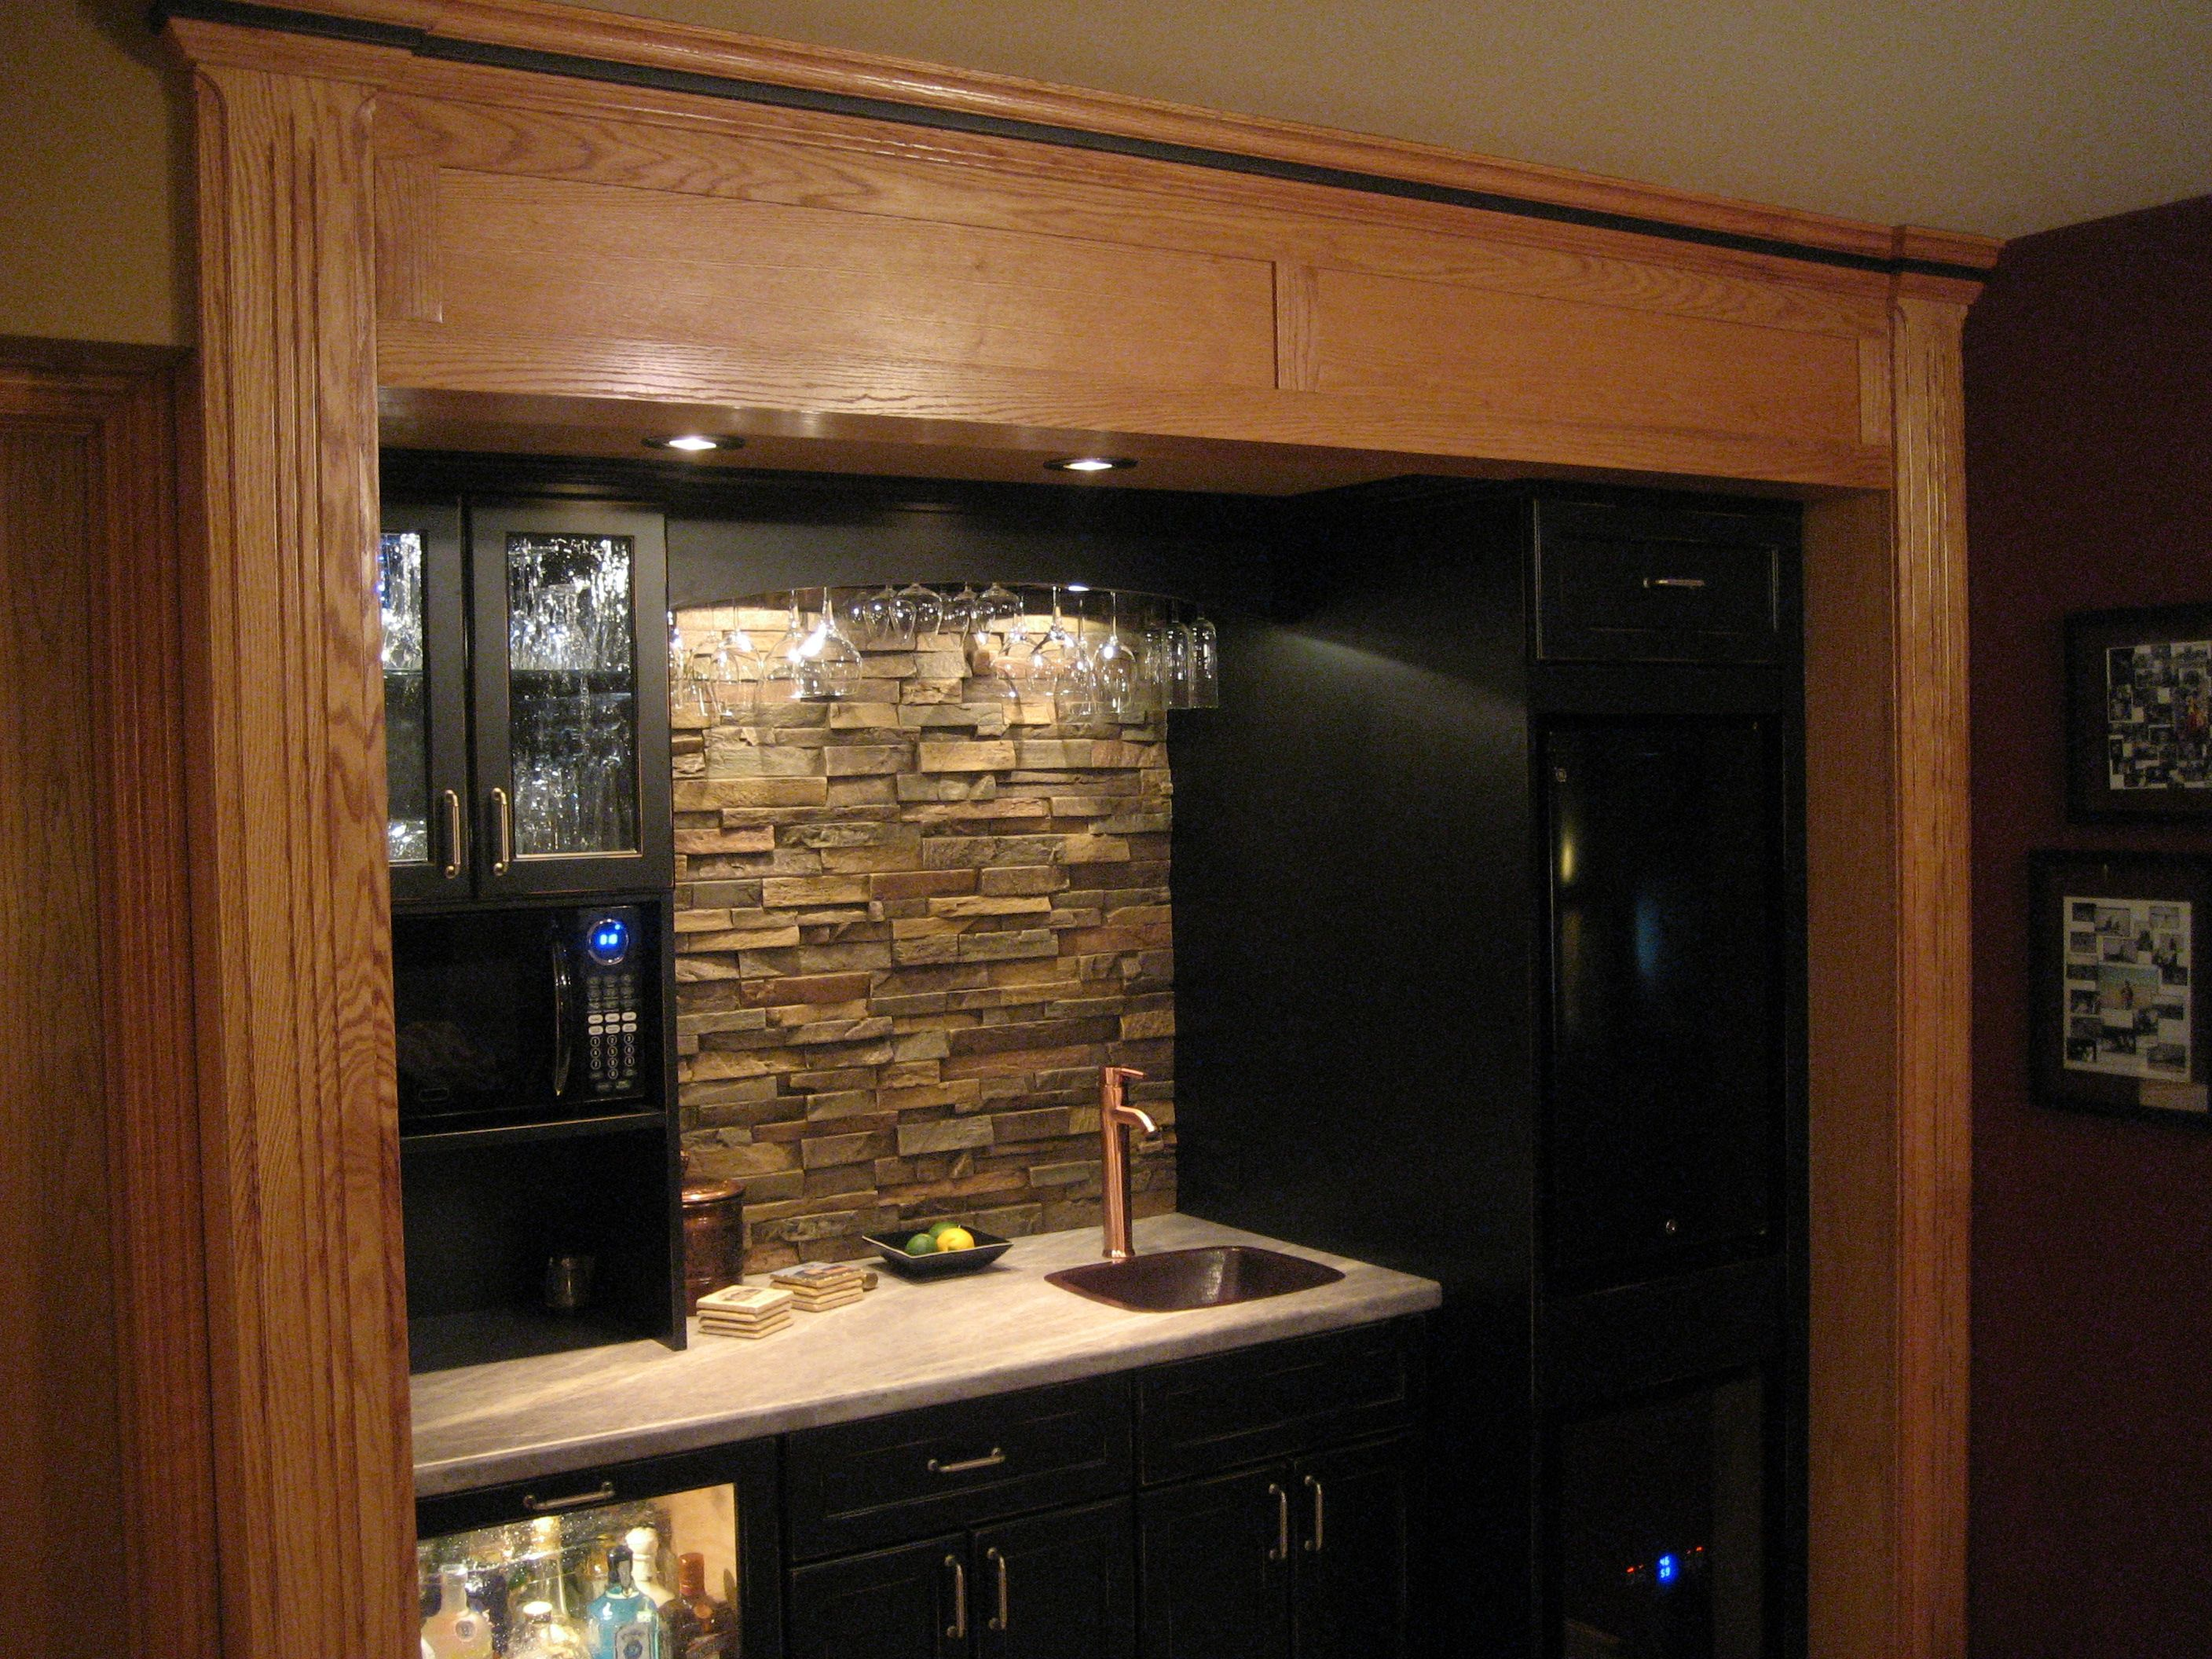 Stone Veneer Backsplash : Stone backsplash ideas for kitchen adding veneer